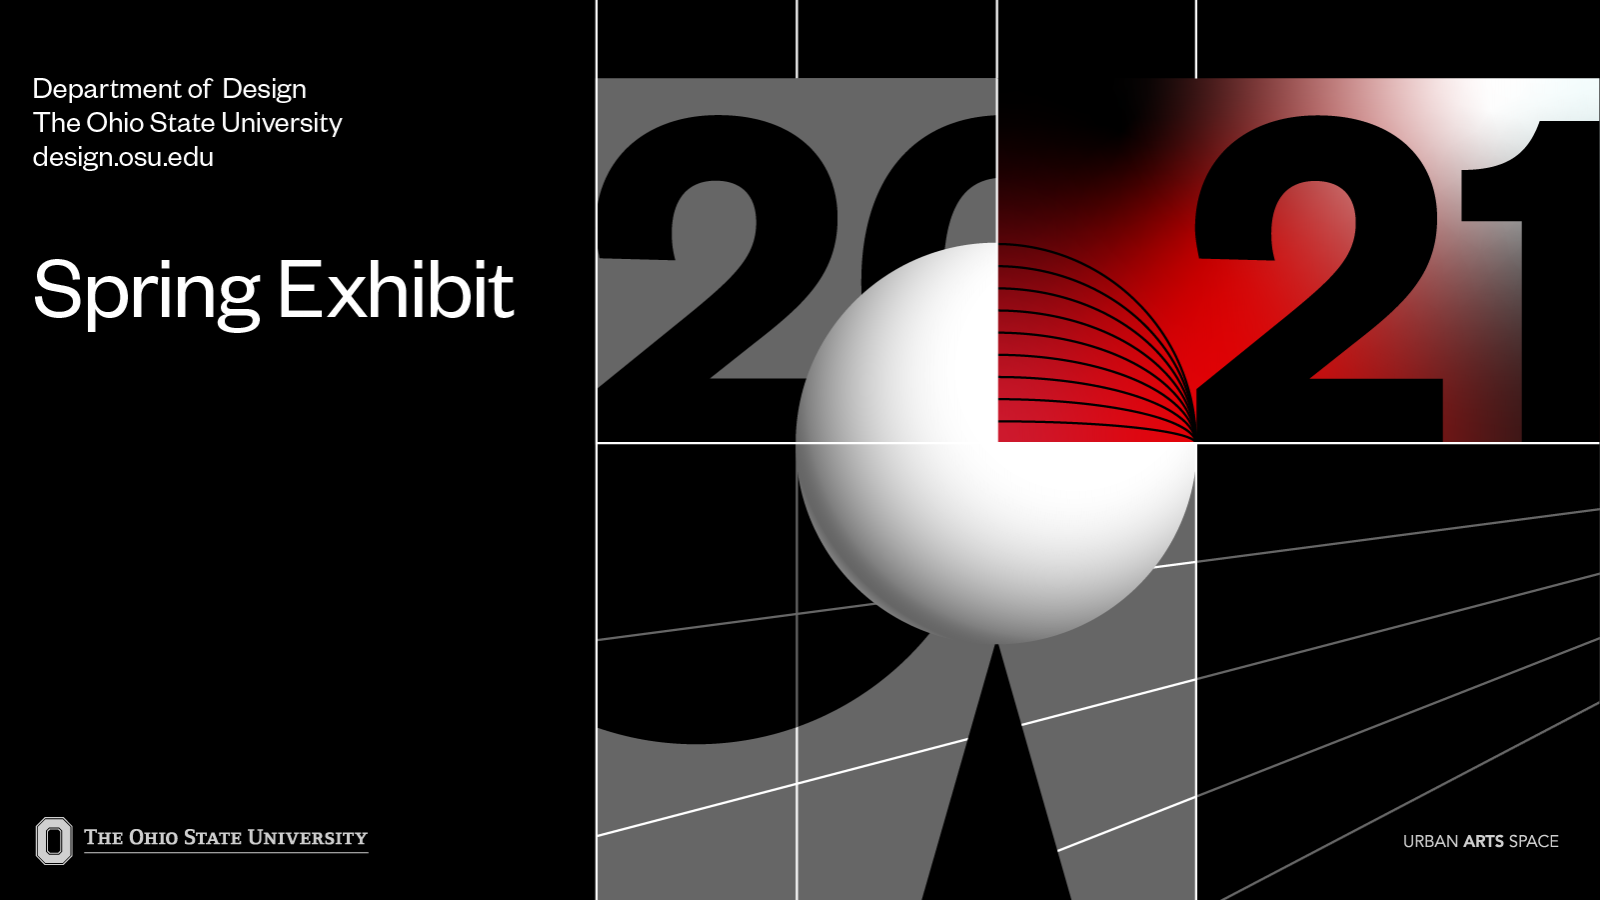 2021 Design Exhibition Spring page header, graphic featuring the title of exhibition and information